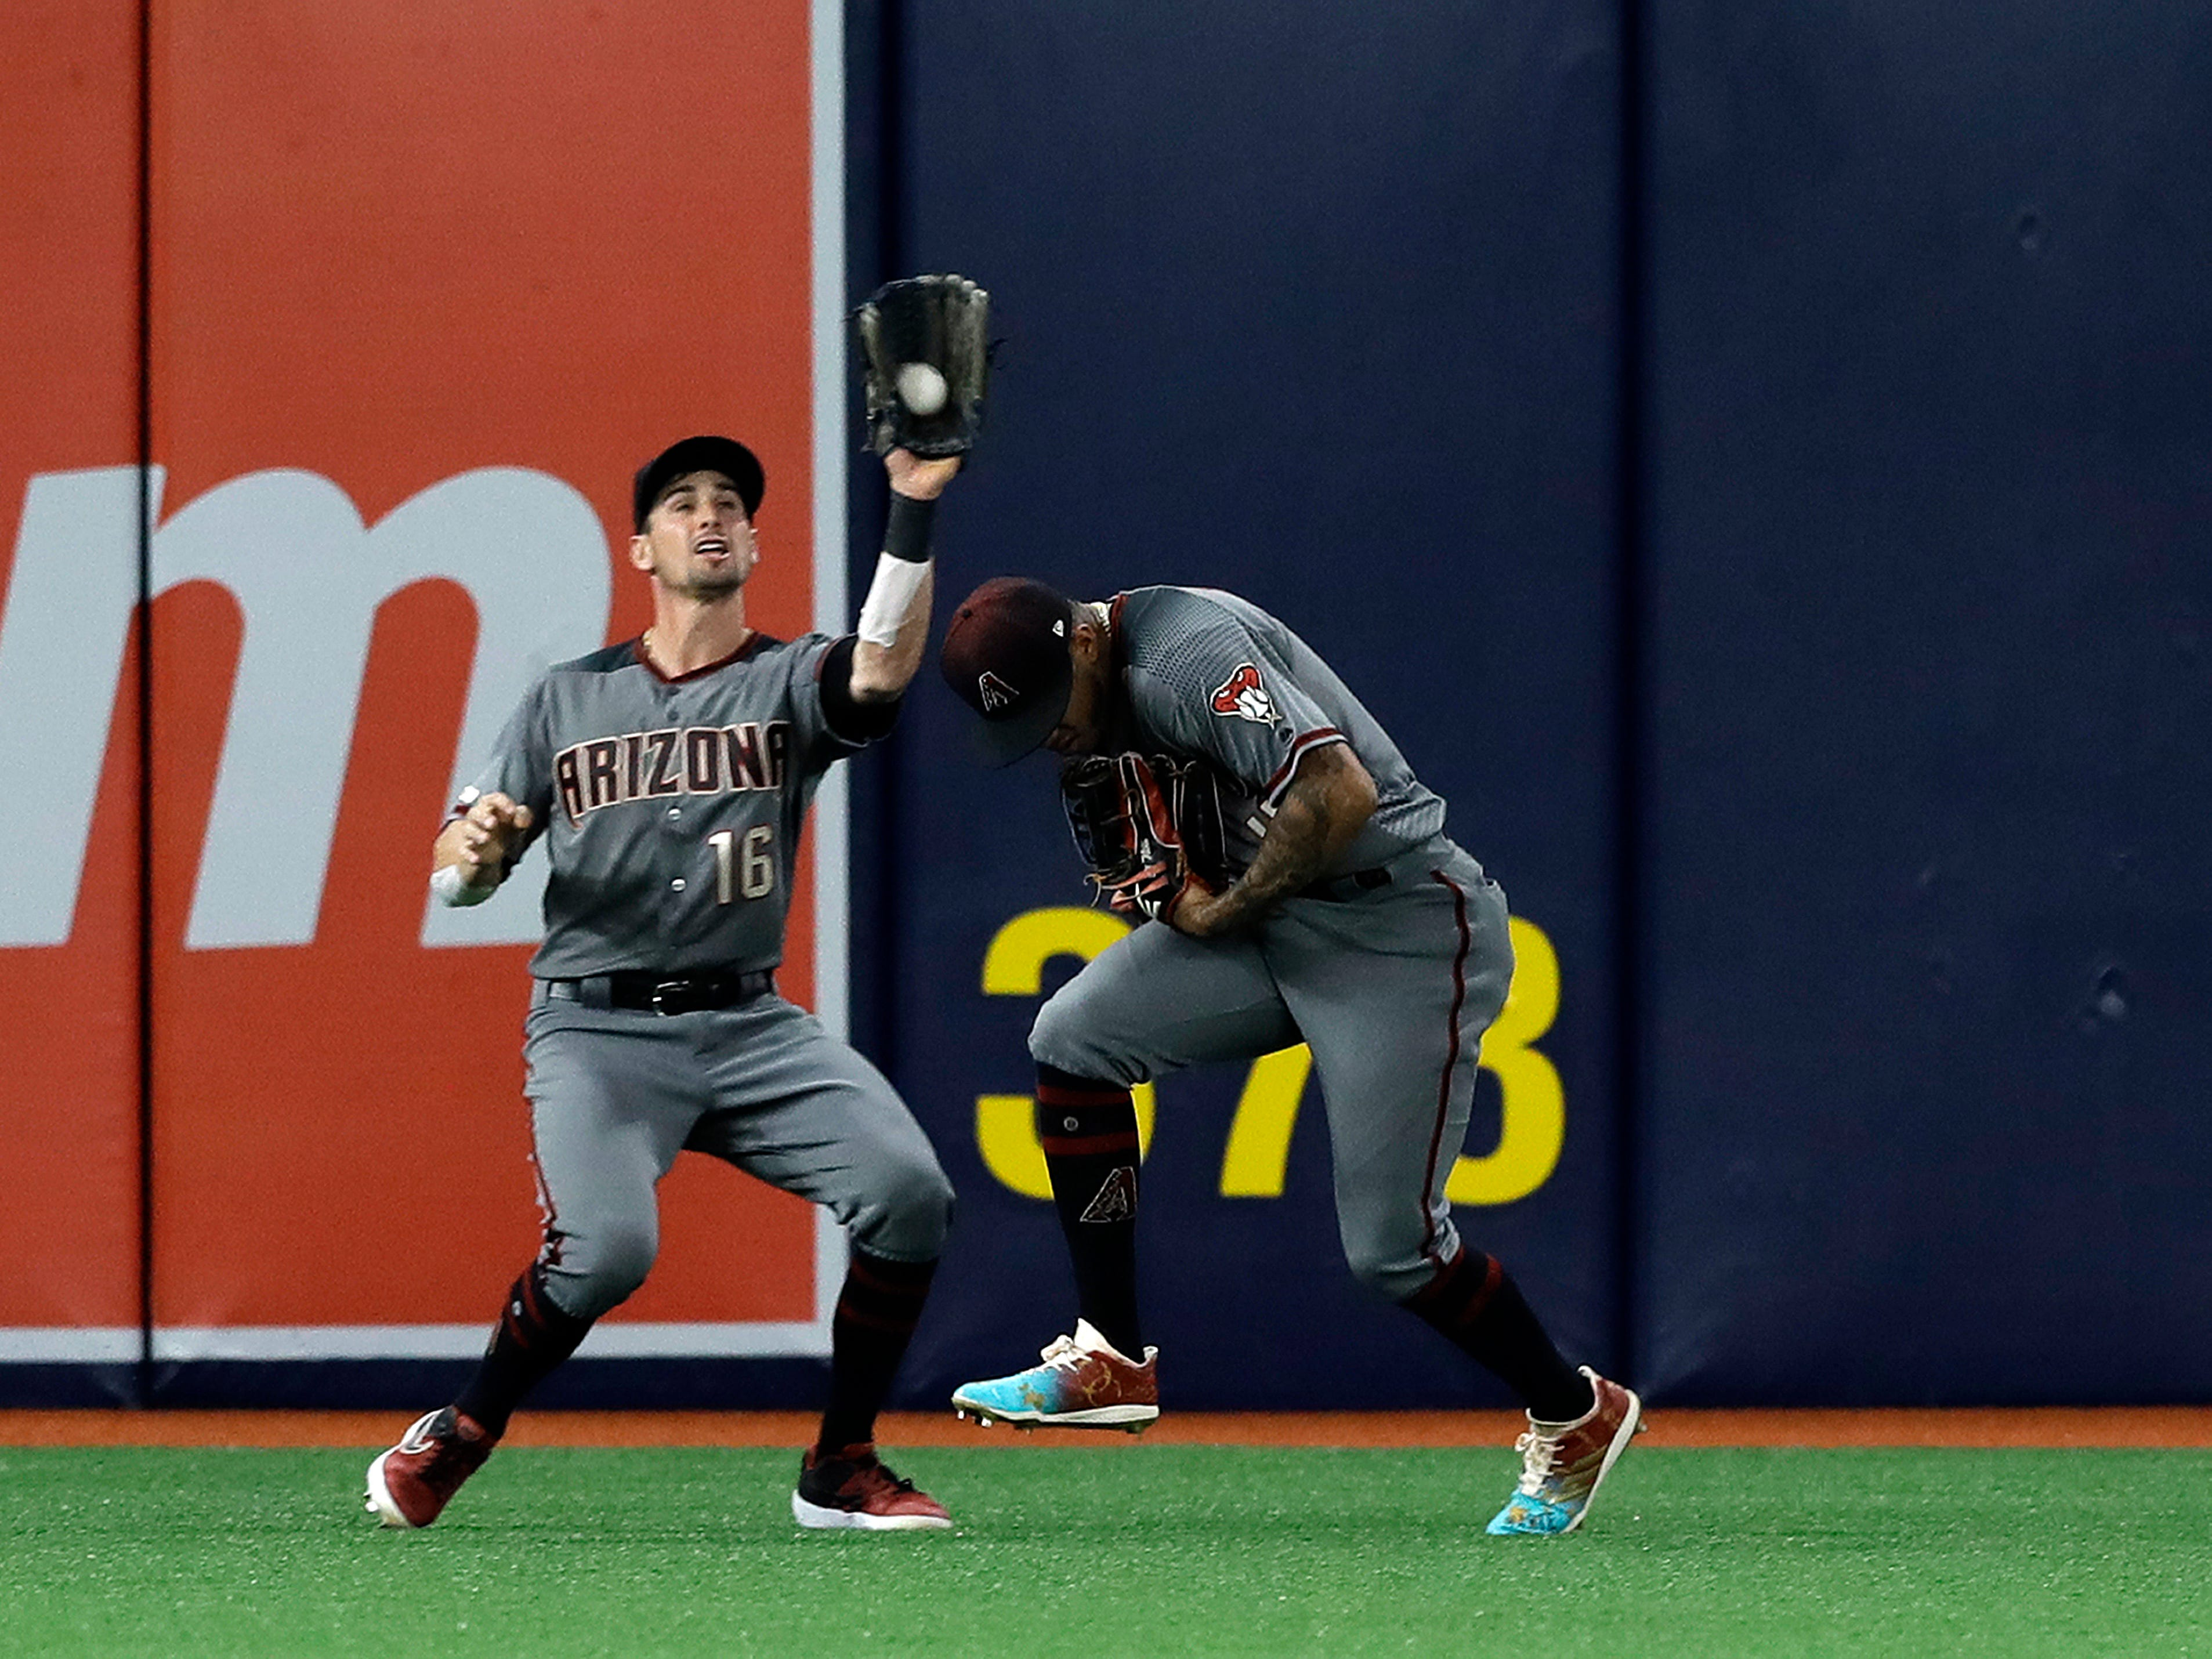 Arizona Diamondbacks left fielder Tim Locastro (16) avoids colliding with center fielder Ketel Marte after catching a fly-out by Tampa Bay Rays' Kevin Kiermaier during the third inning of a baseball game Monday, May 6, 2019, in St. Petersburg, Fla. (AP Photo/Chris O'Meara)